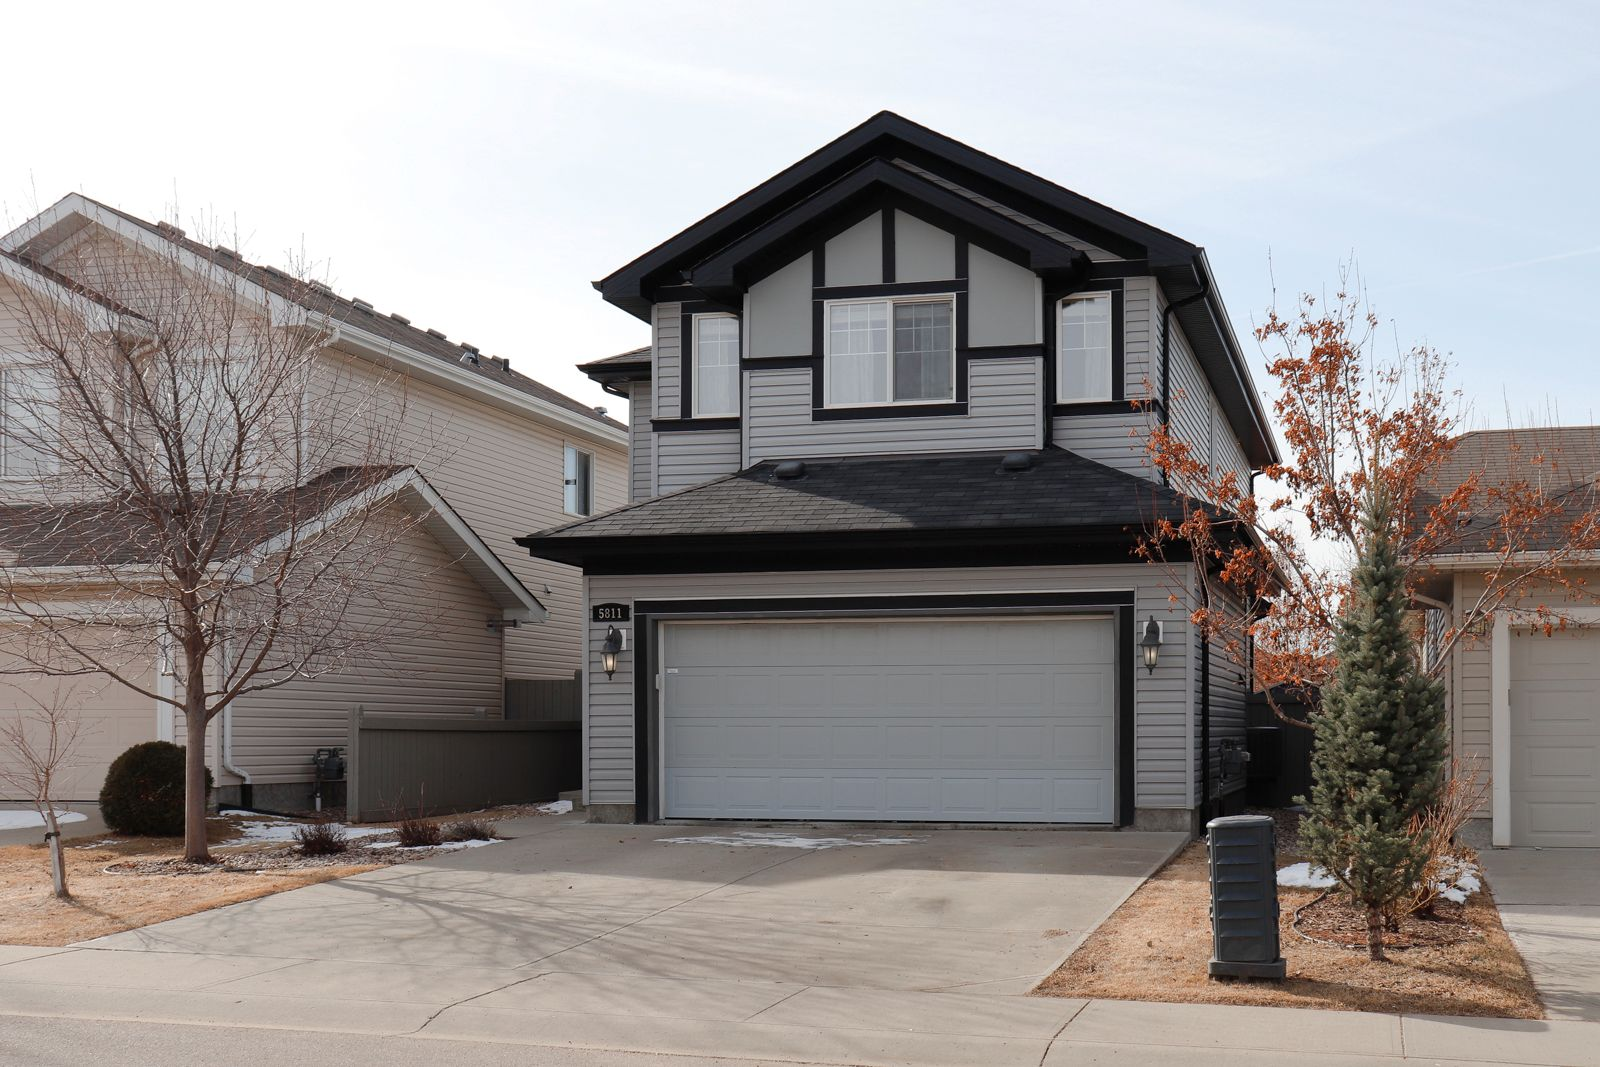 Main Photo: 5811 7 ave SW in Edmonton: House for sale : MLS®# E4238747